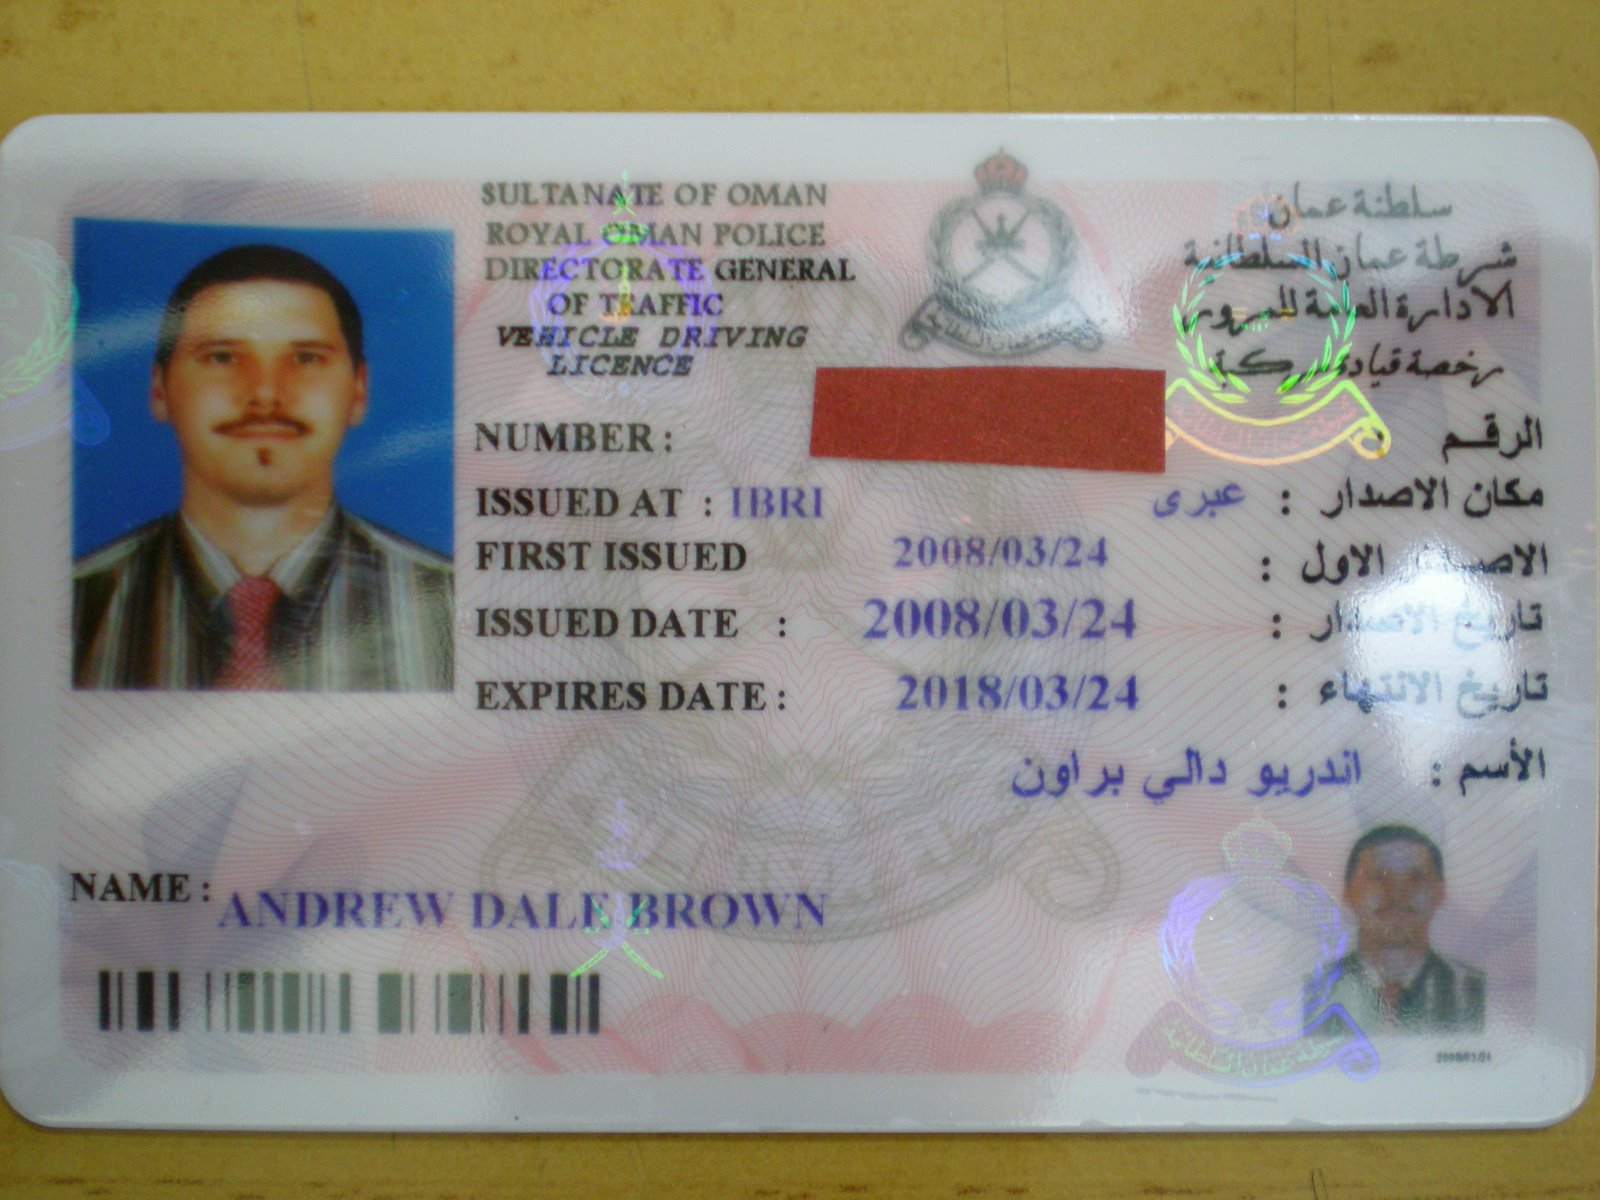 age requirements for driver s license raising Drivers license papers - the raising of the age you can get your driver's license.